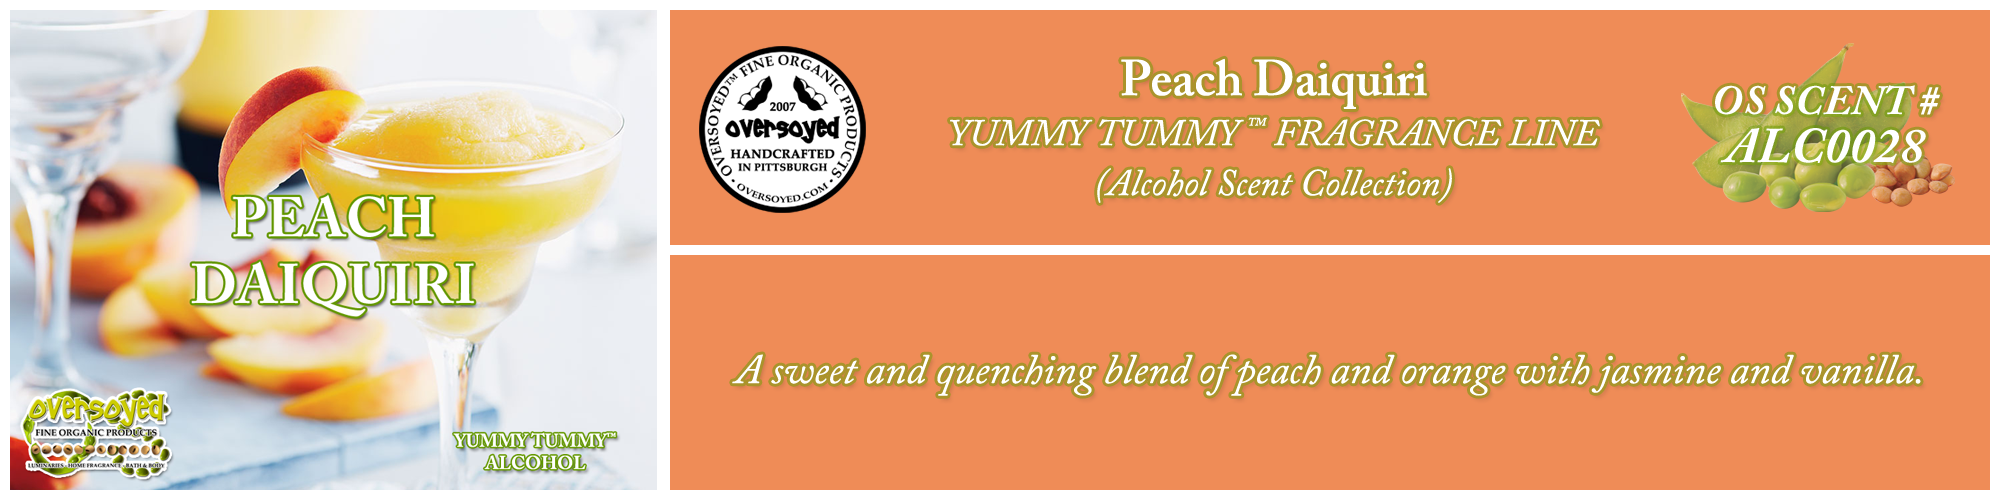 Peach Daiquiri Handcrafted Products Collection